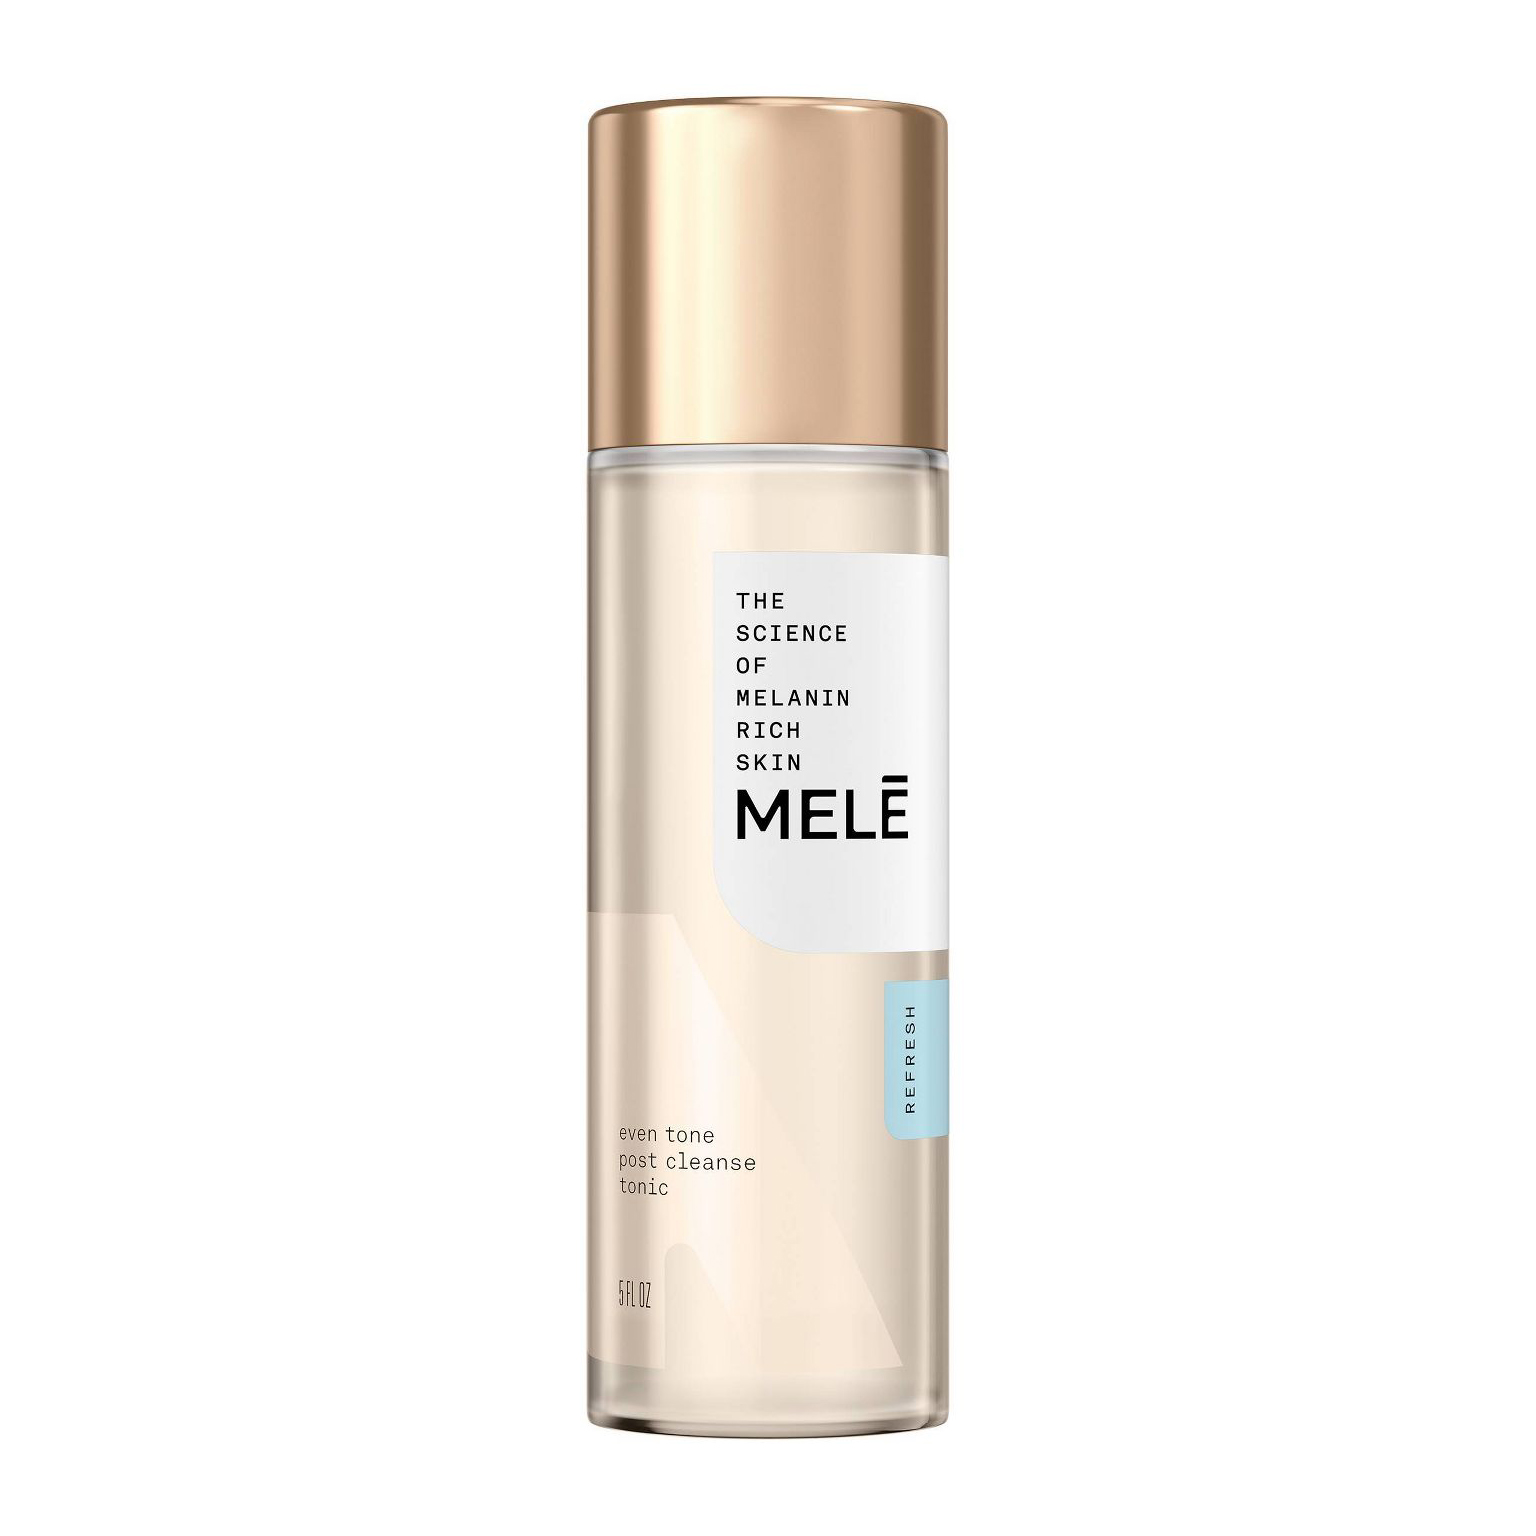 Mele Even Tone Post Cleanse Tonic